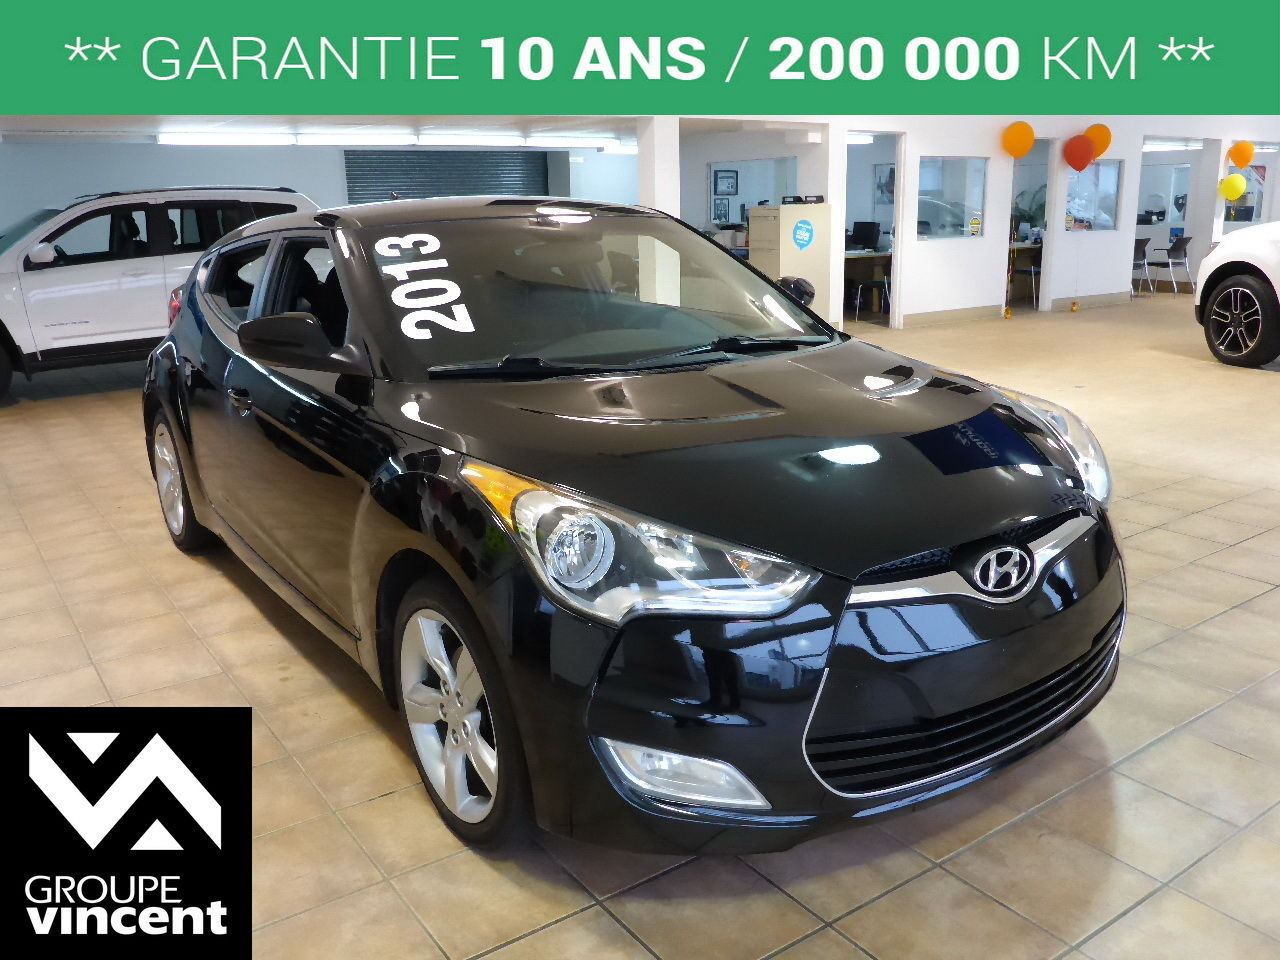 hyundai veloster se mags 2013 d 39 occasion shawinigan groupe vincent 70223bt vfl. Black Bedroom Furniture Sets. Home Design Ideas